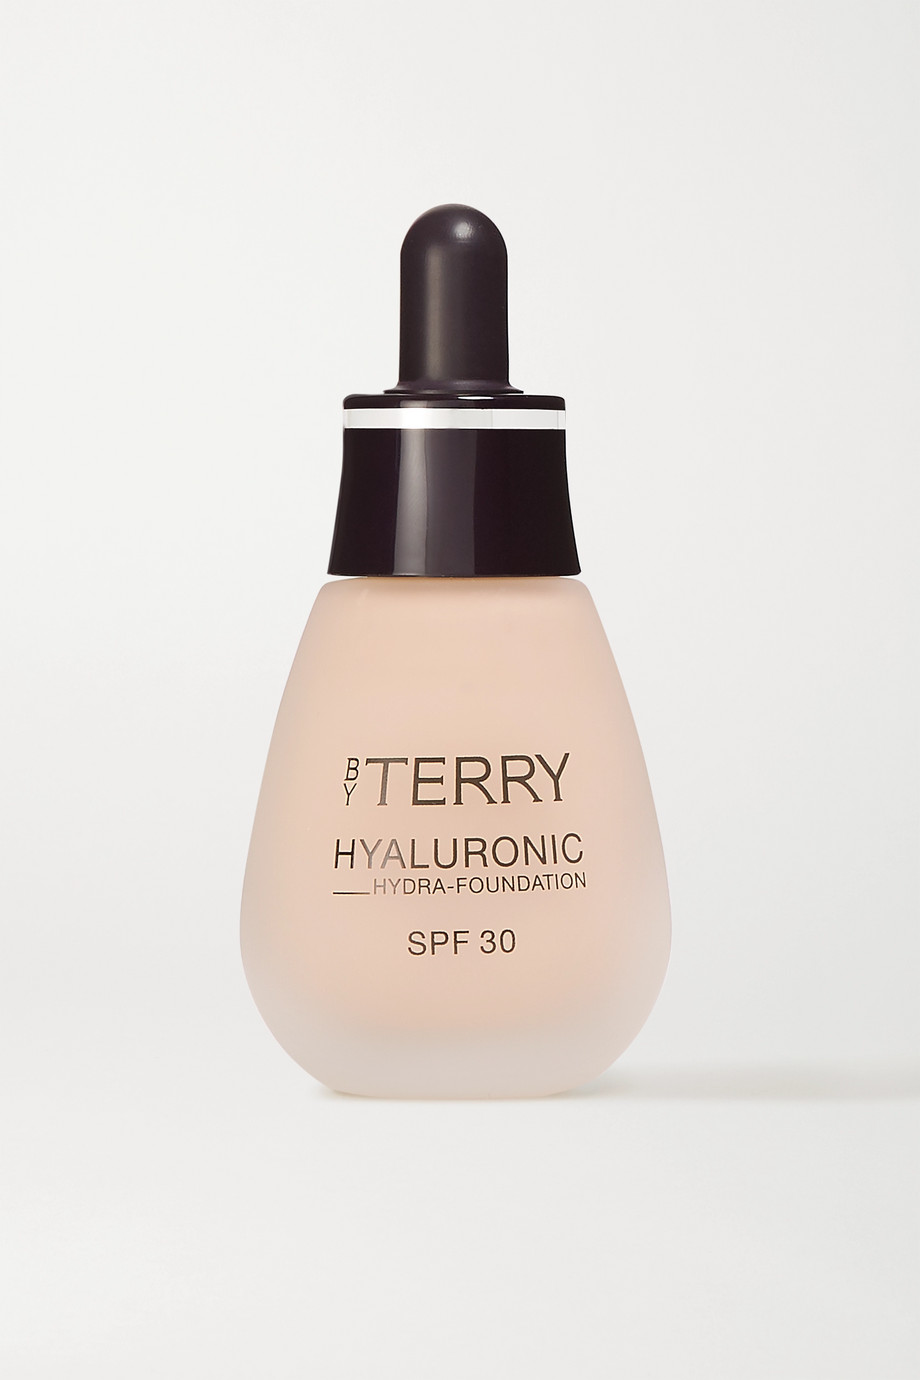 BY TERRY Fond de teint liquide soin perfection Hyaluronic Hydra-Foundation SPF 30, 200N